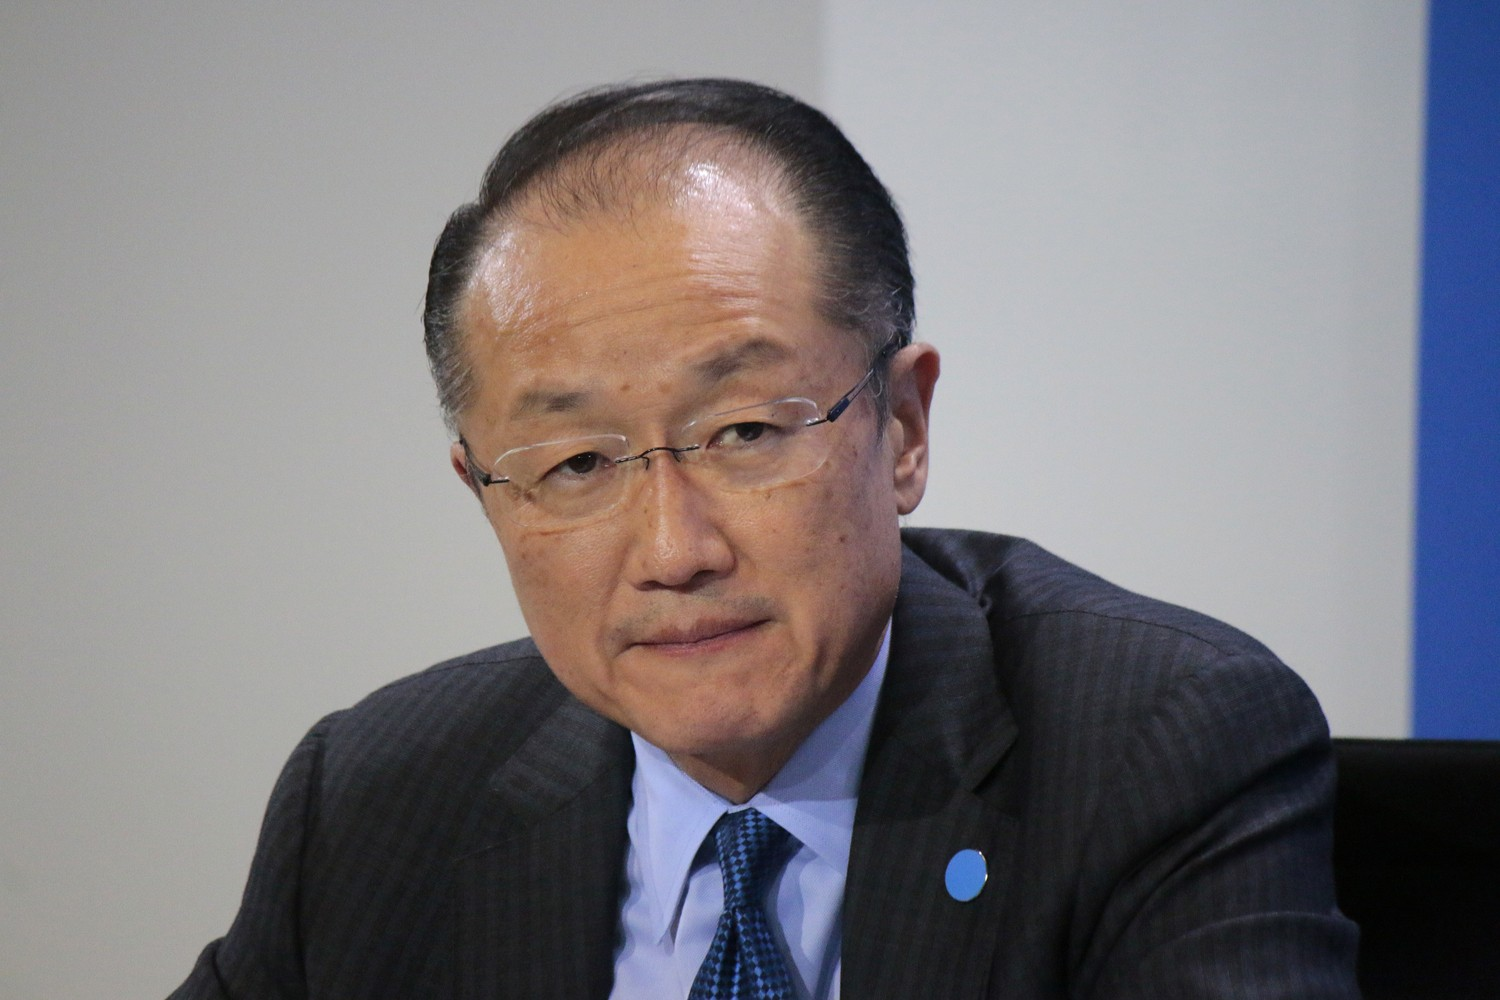 https://www.coindesk.com/world-bank-president-everyone-excited-blockchain/